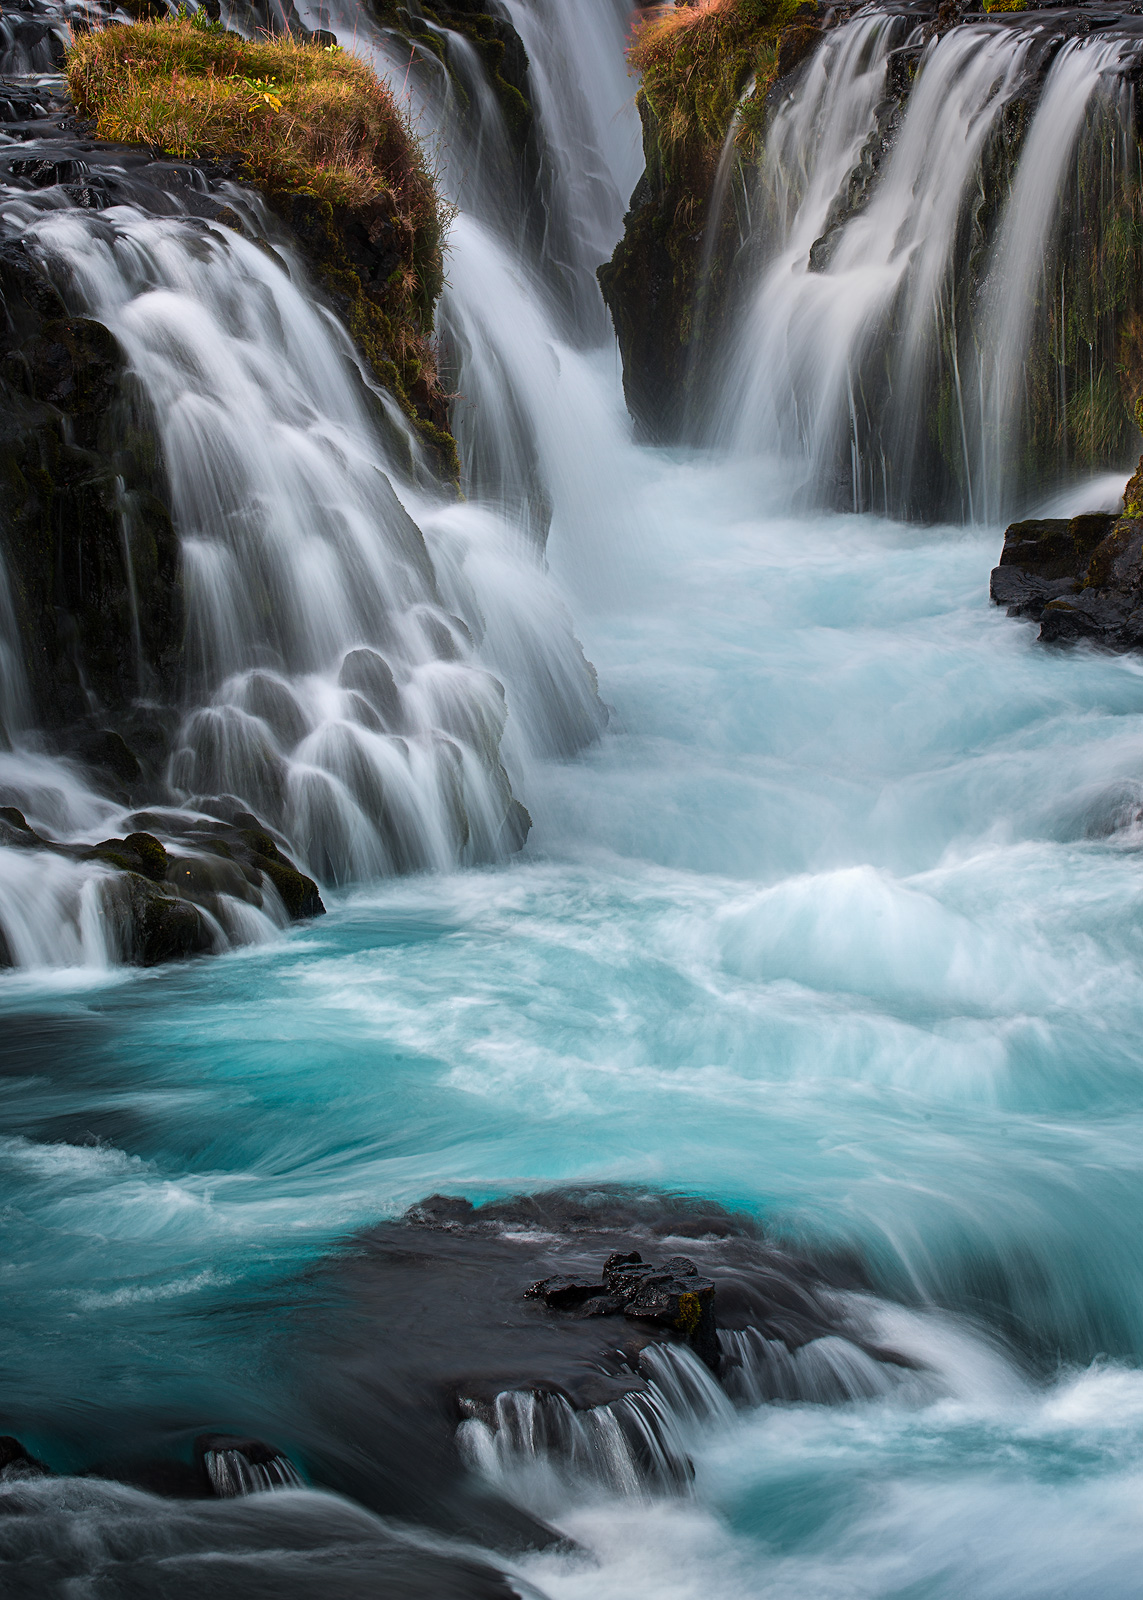 Close up of a section of Iceland's Bruarfoss.